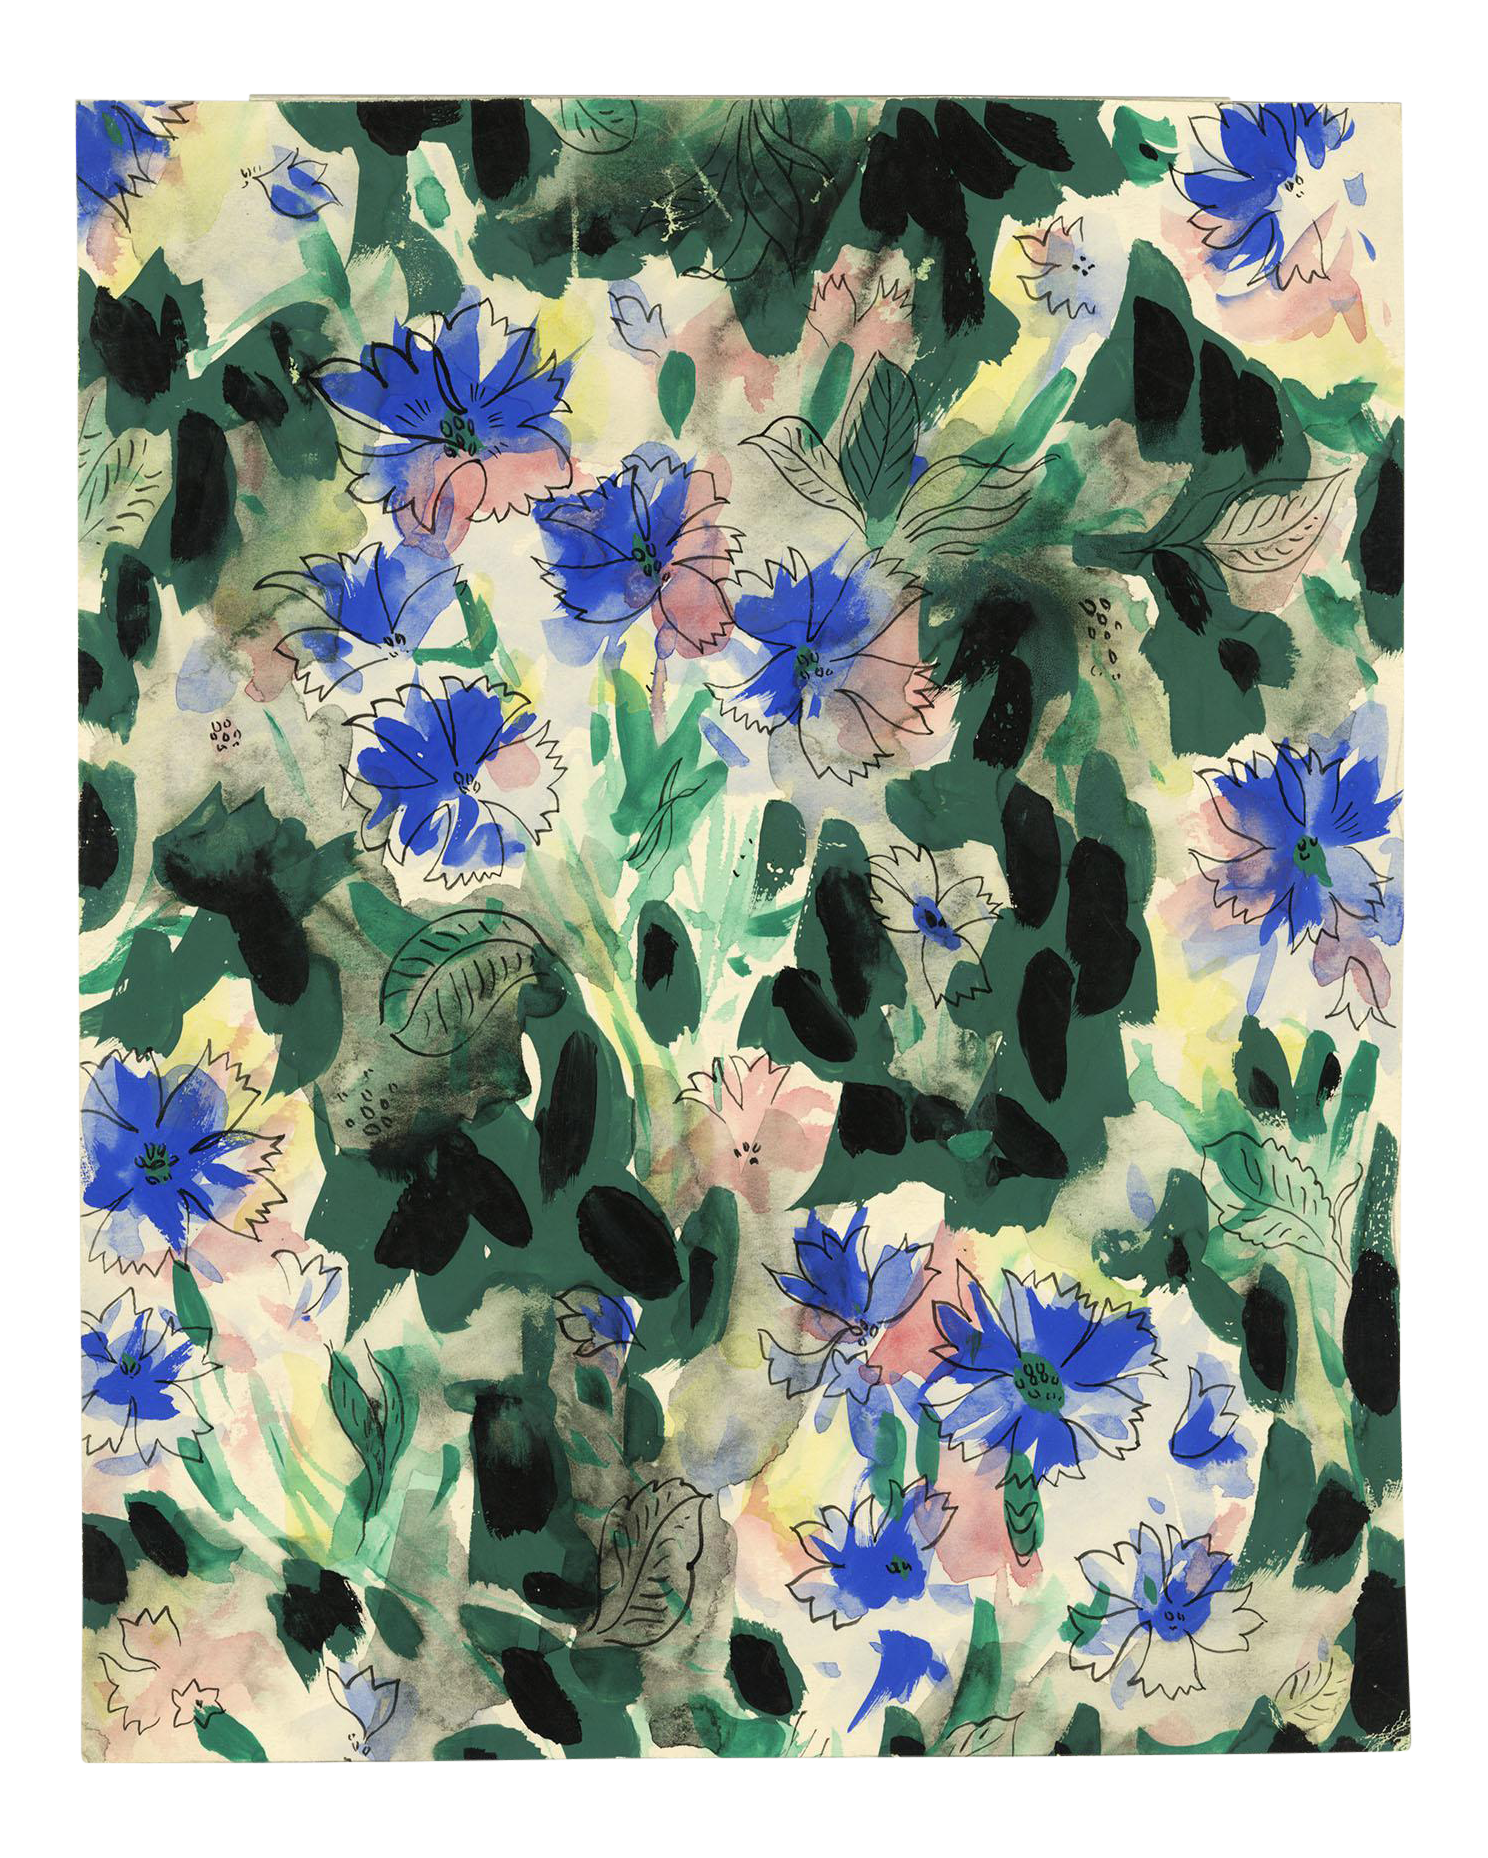 Vintage Repeat Floral Pattern For Textile Watercolor Painting